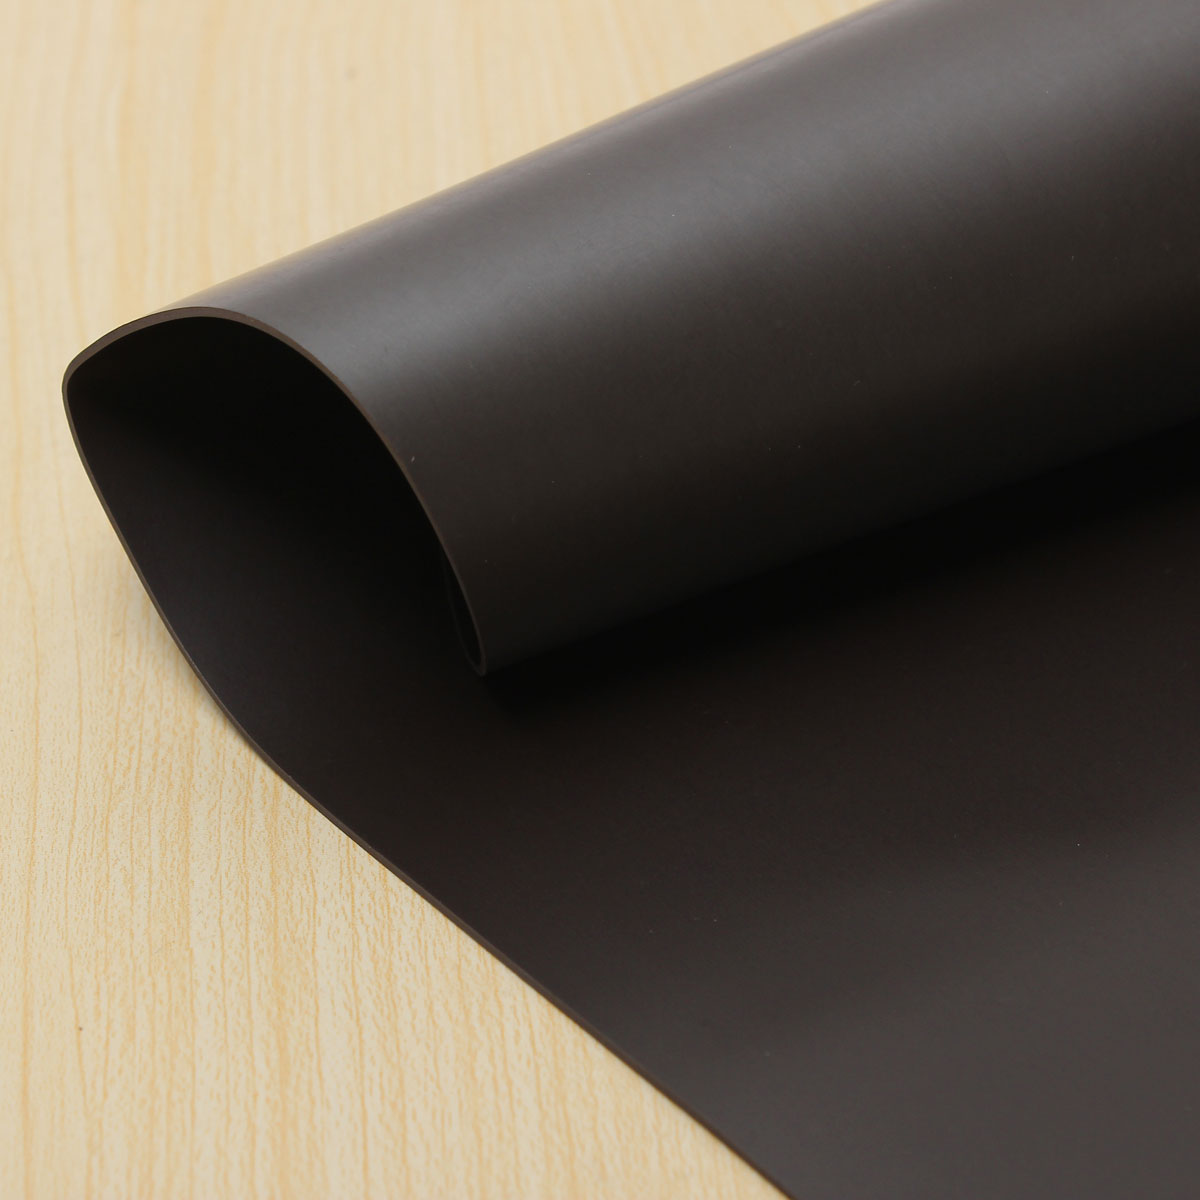 Self Adhesive Flexible Magnetic Strip